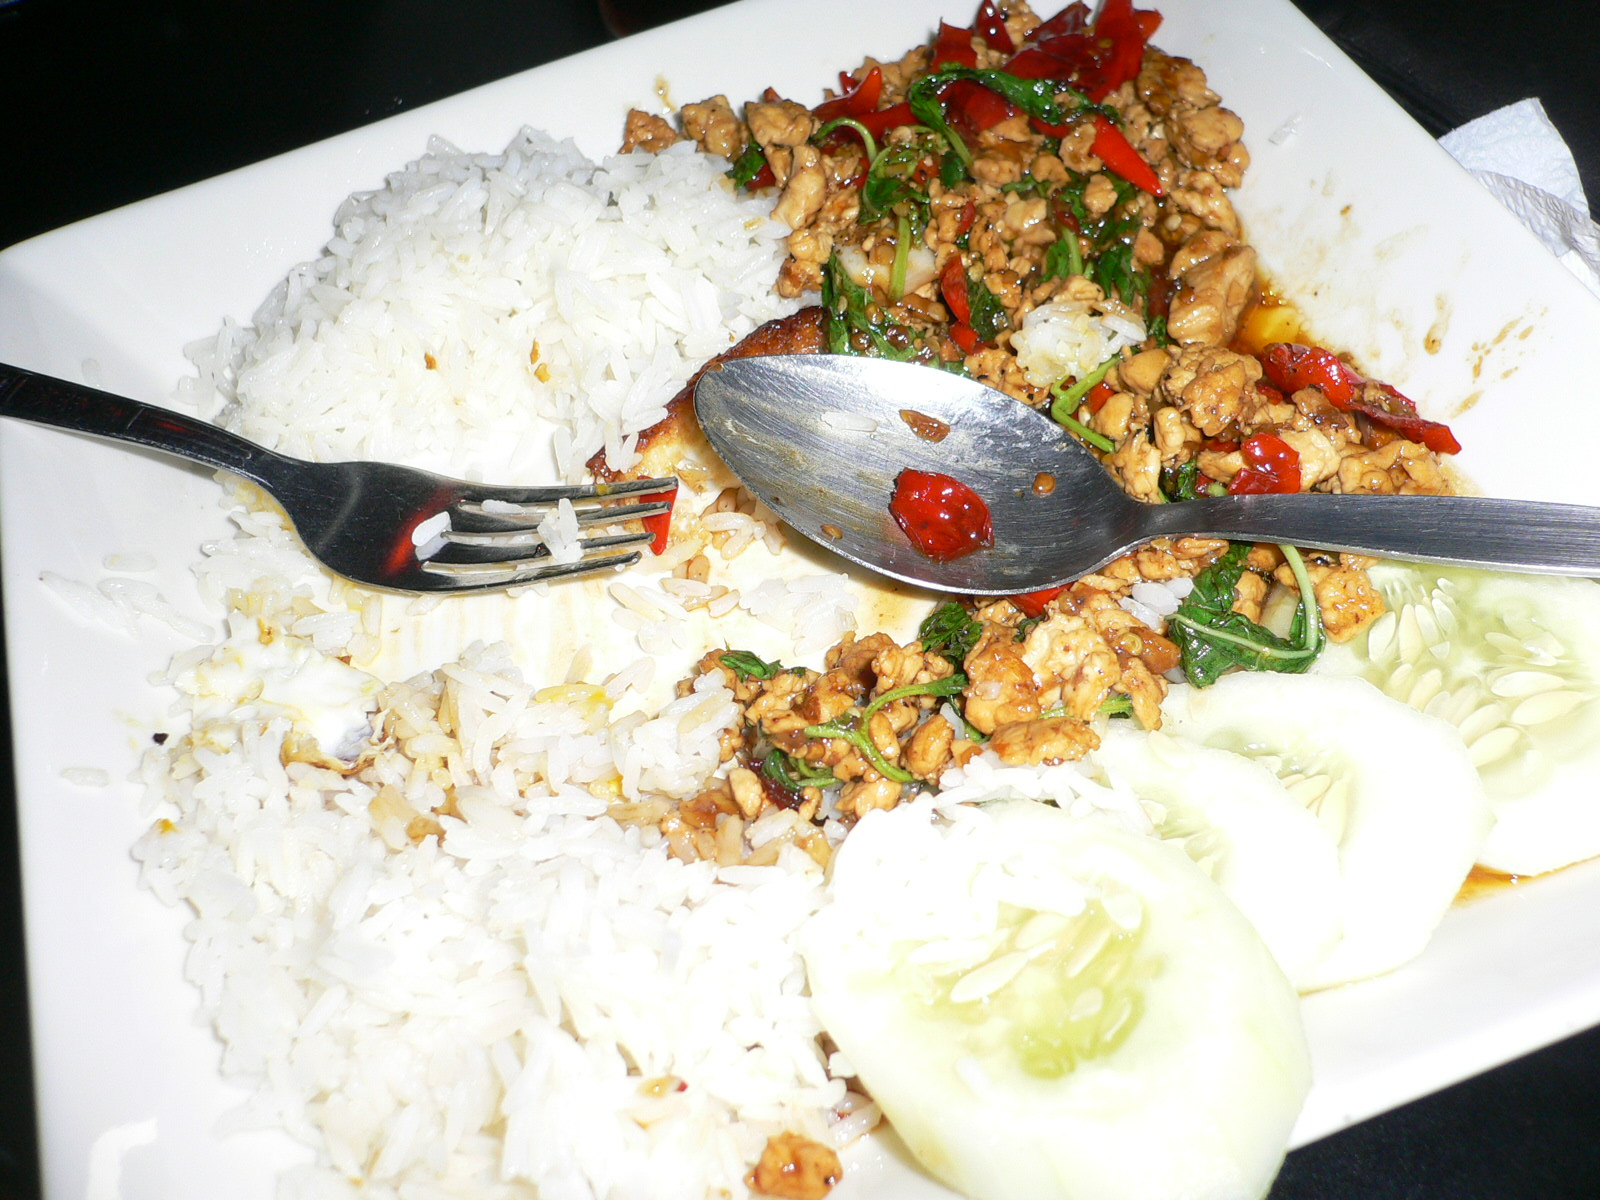 https://foodloader.net/xSh_2010-12-30_Thaifried_spicy_Beef.jpg